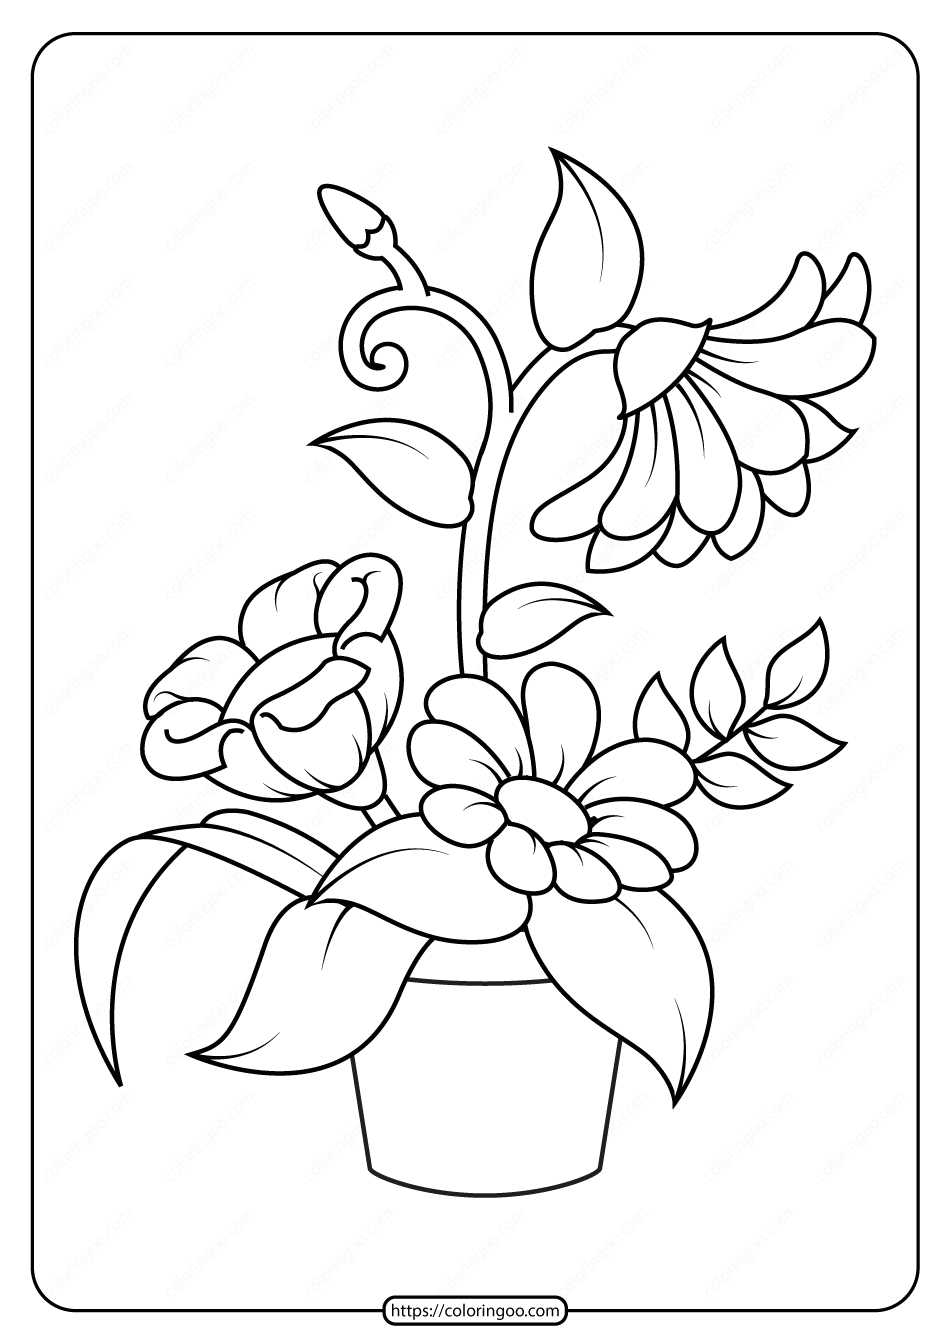 coloring pic of flower 10 flower coloring sheets for girls and boys all esl pic flower coloring of